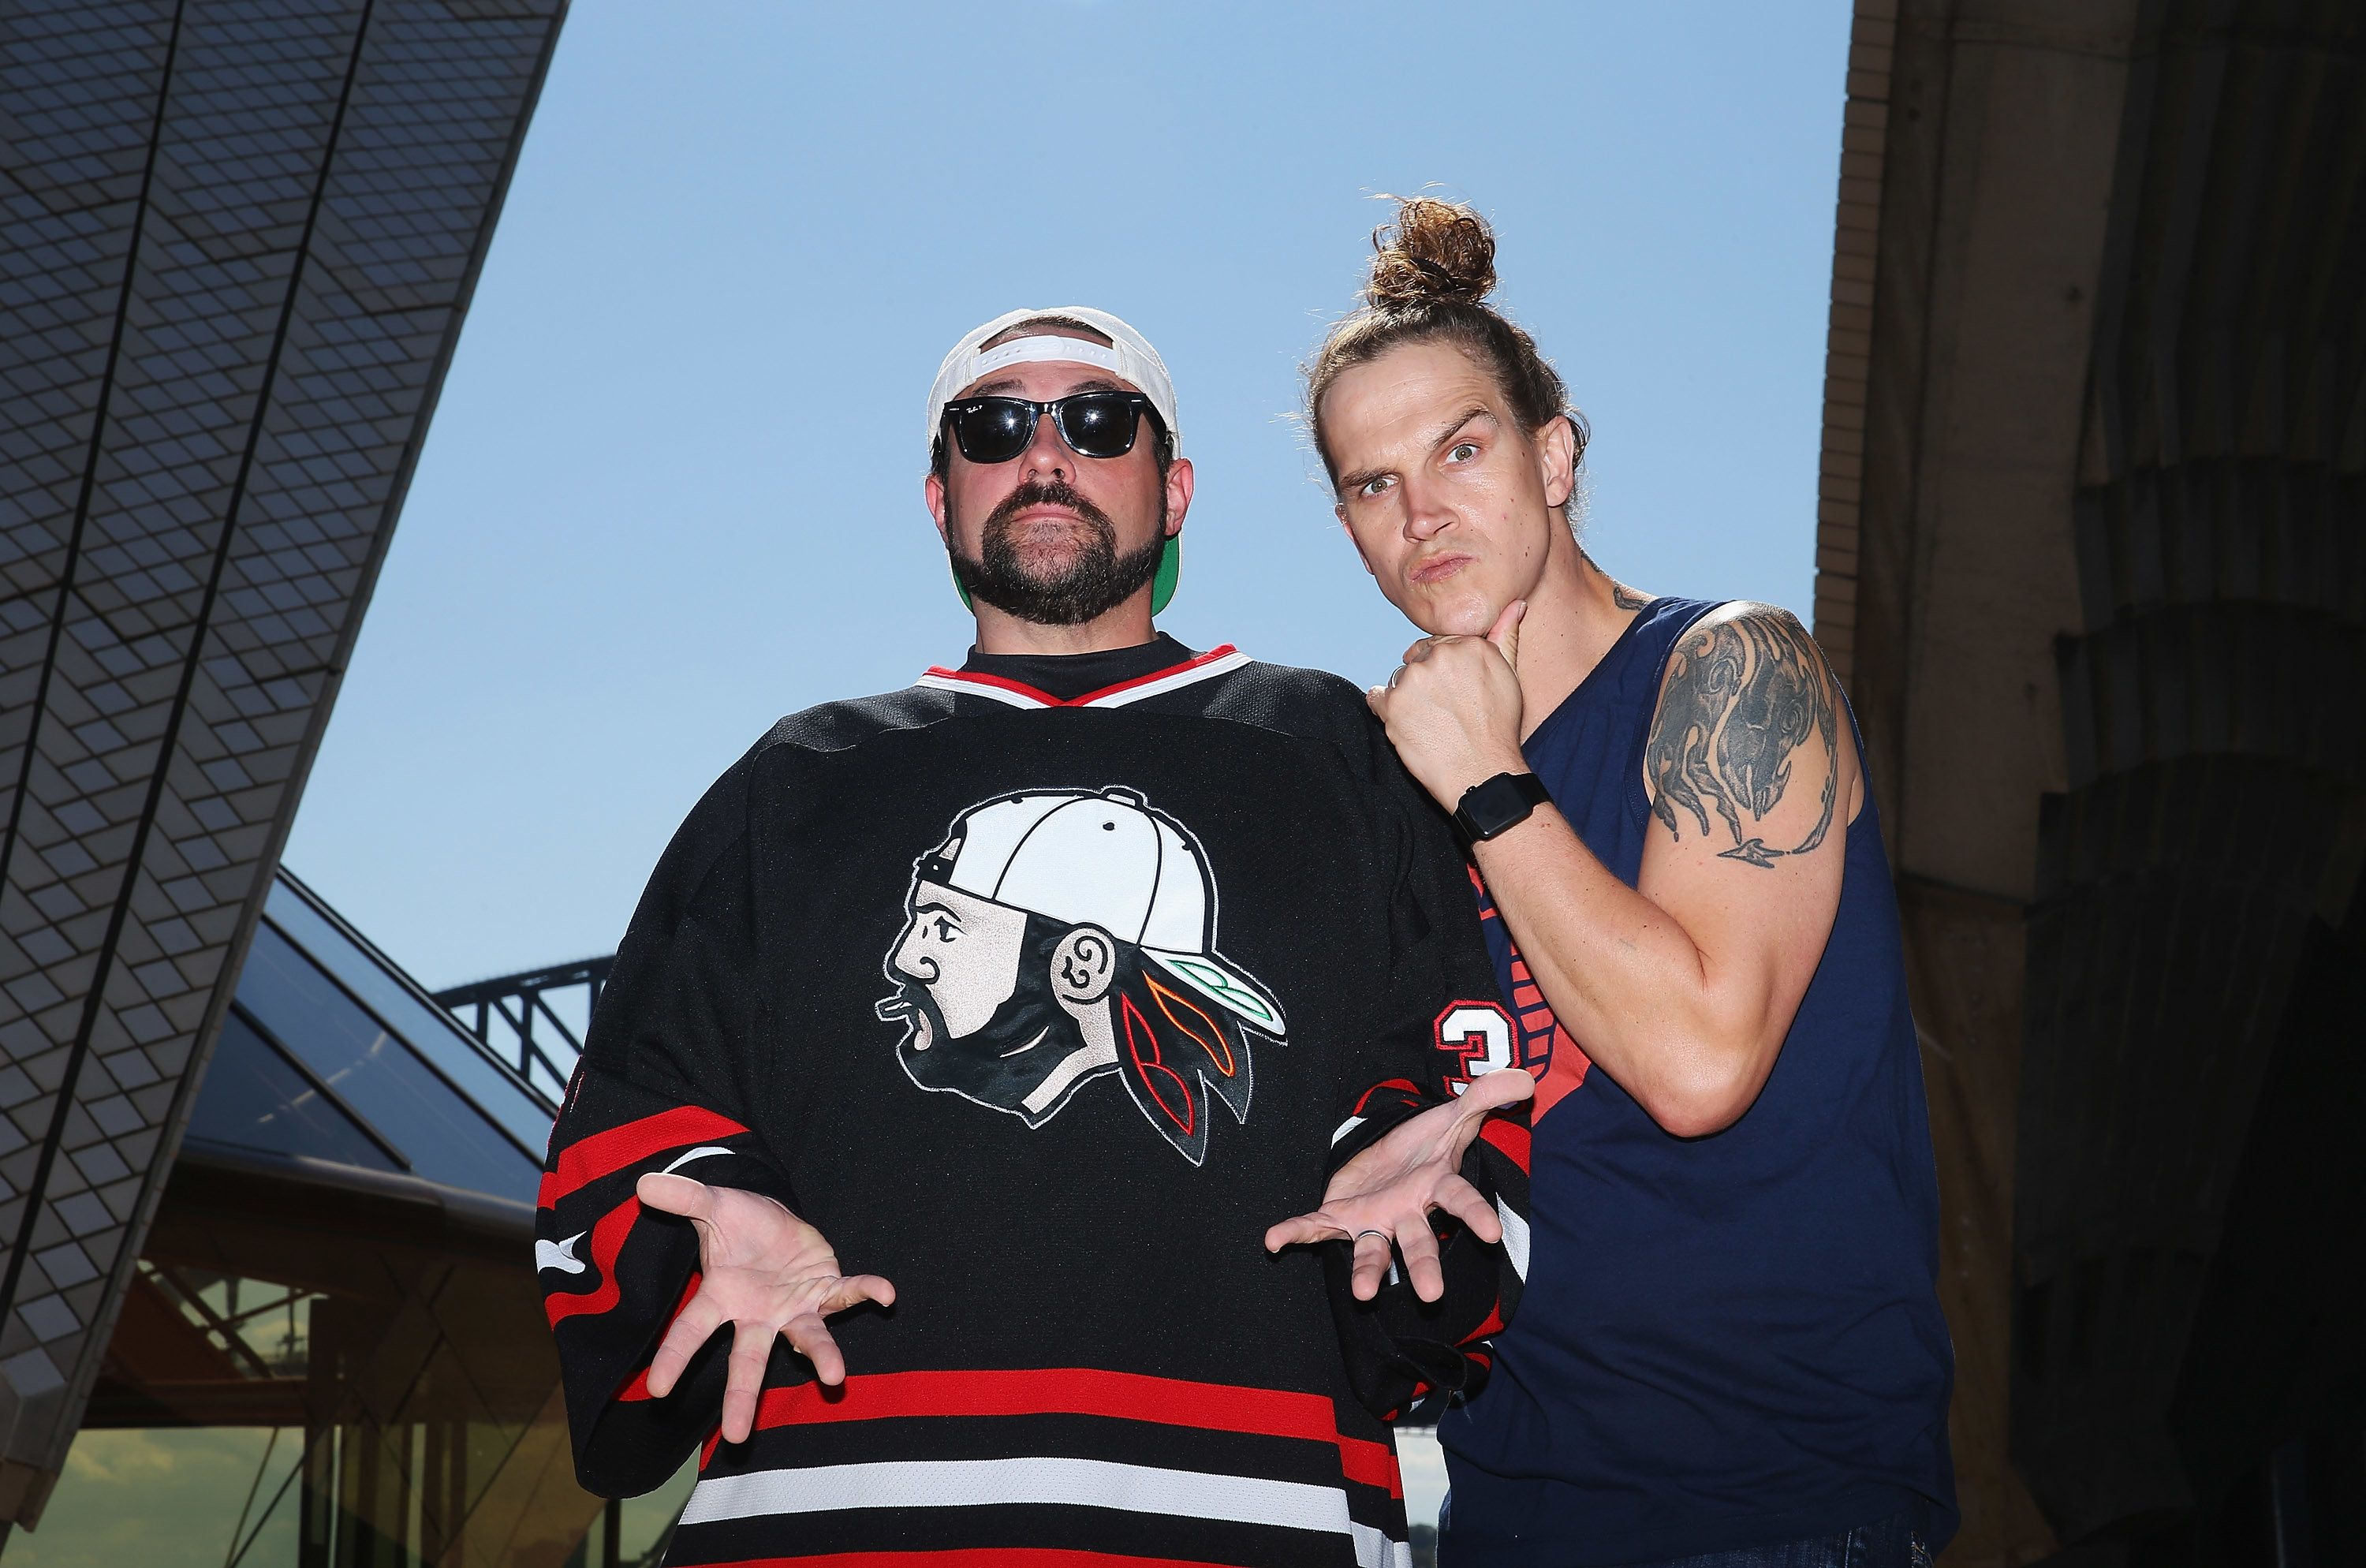 SYDNEY, AUSTRALIA - SEPTEMBER 18:  Kevin Smith and Jason Mewes (aka Jay and Silent Bob) pose during a media call at Sydney Opera House on September 18, 2015 in Sydney, Australia.  (Photo by Don Arnold/WireImage)